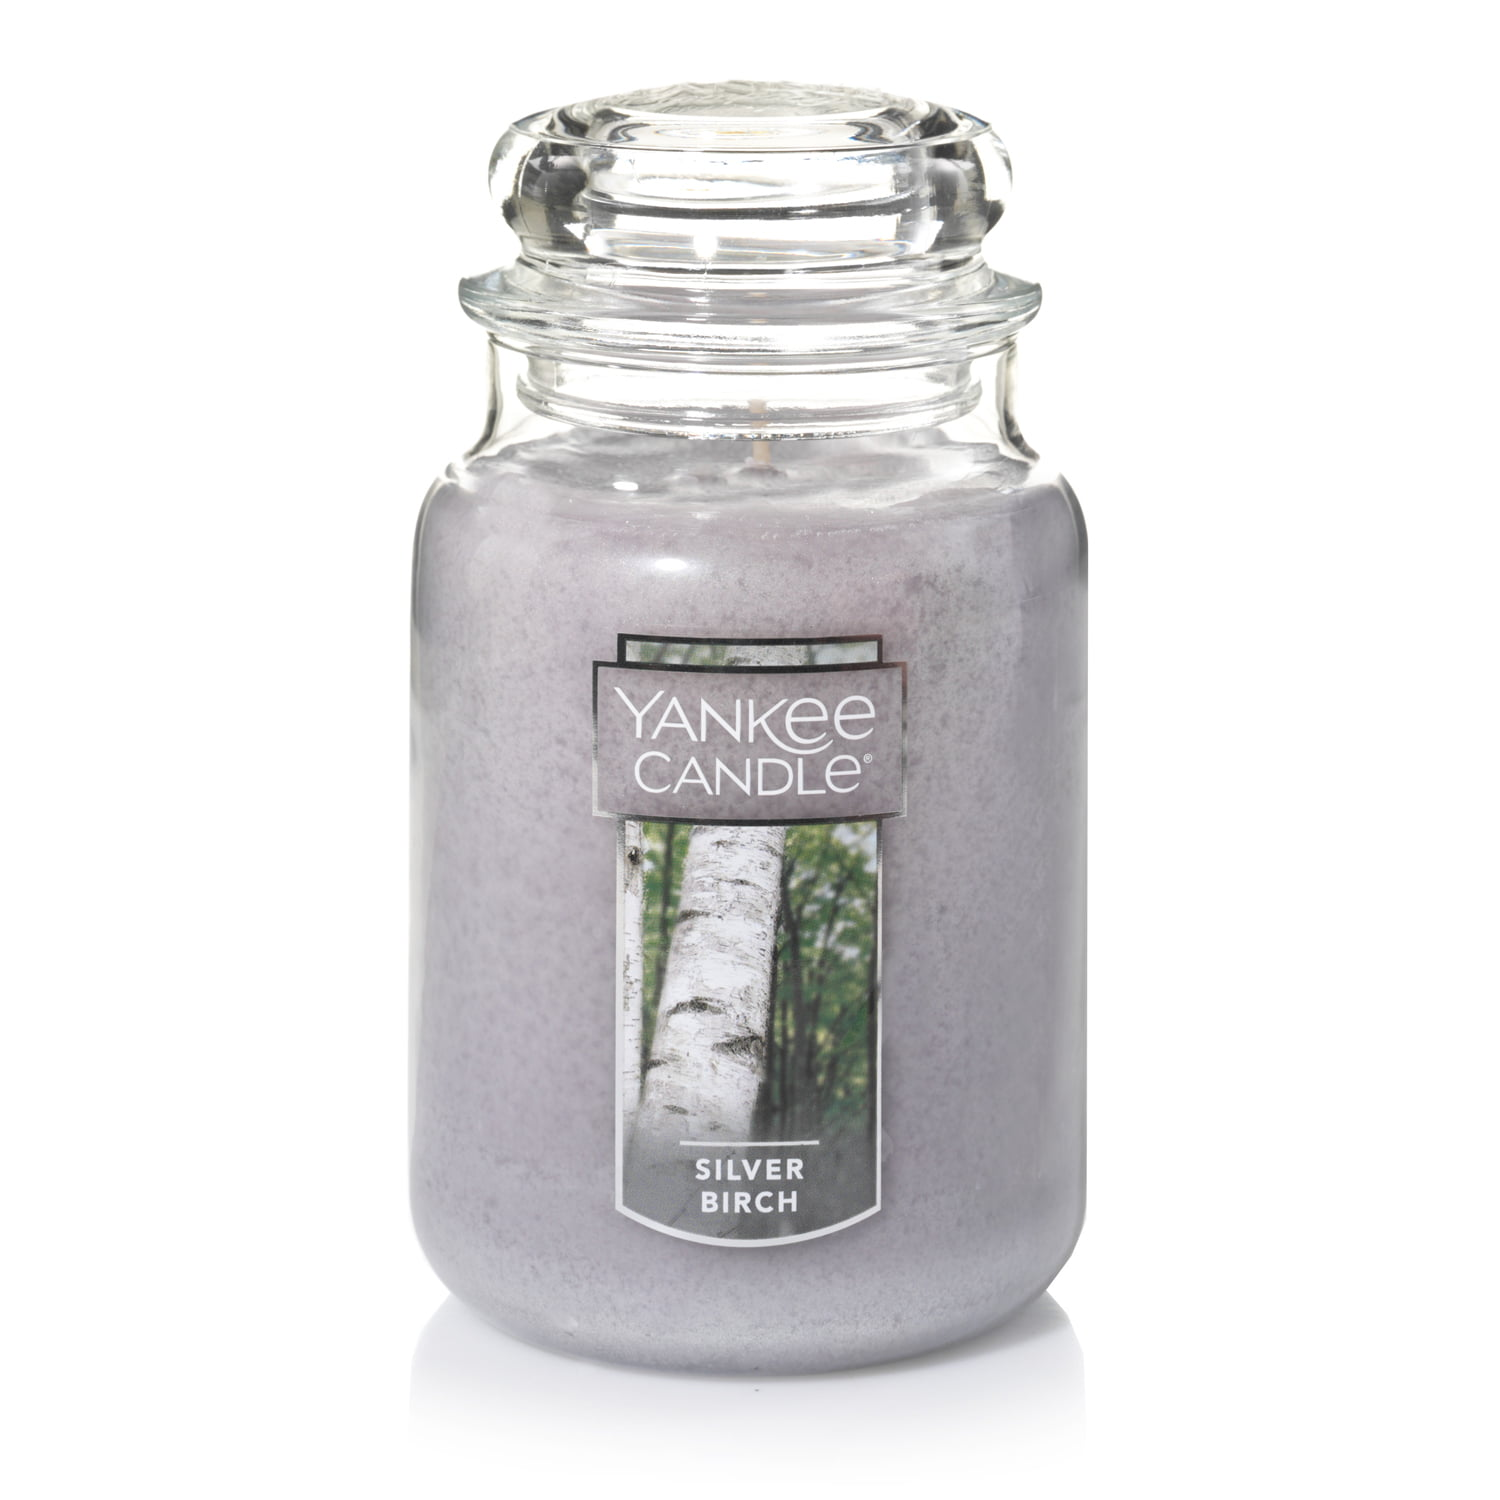 Yankee Candle Large Jar Candle, Silver Birch by Newell Brands